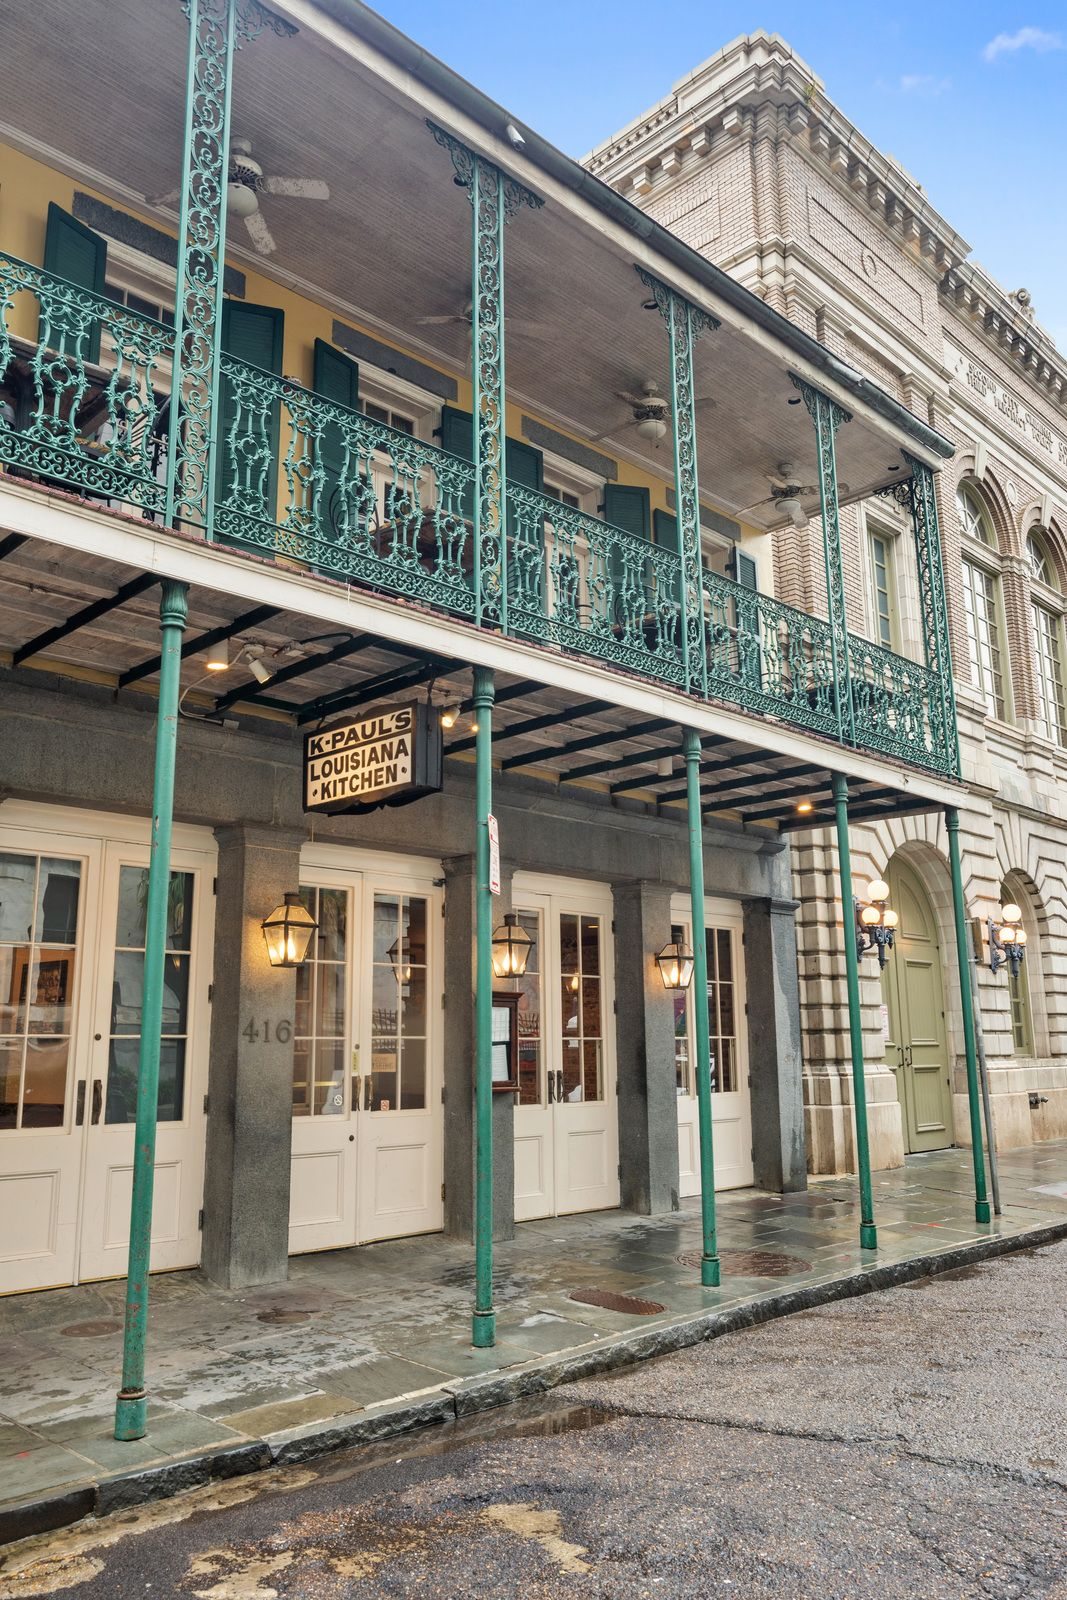 Internationally Renowned New Orleans Restaurant to Cease Operations